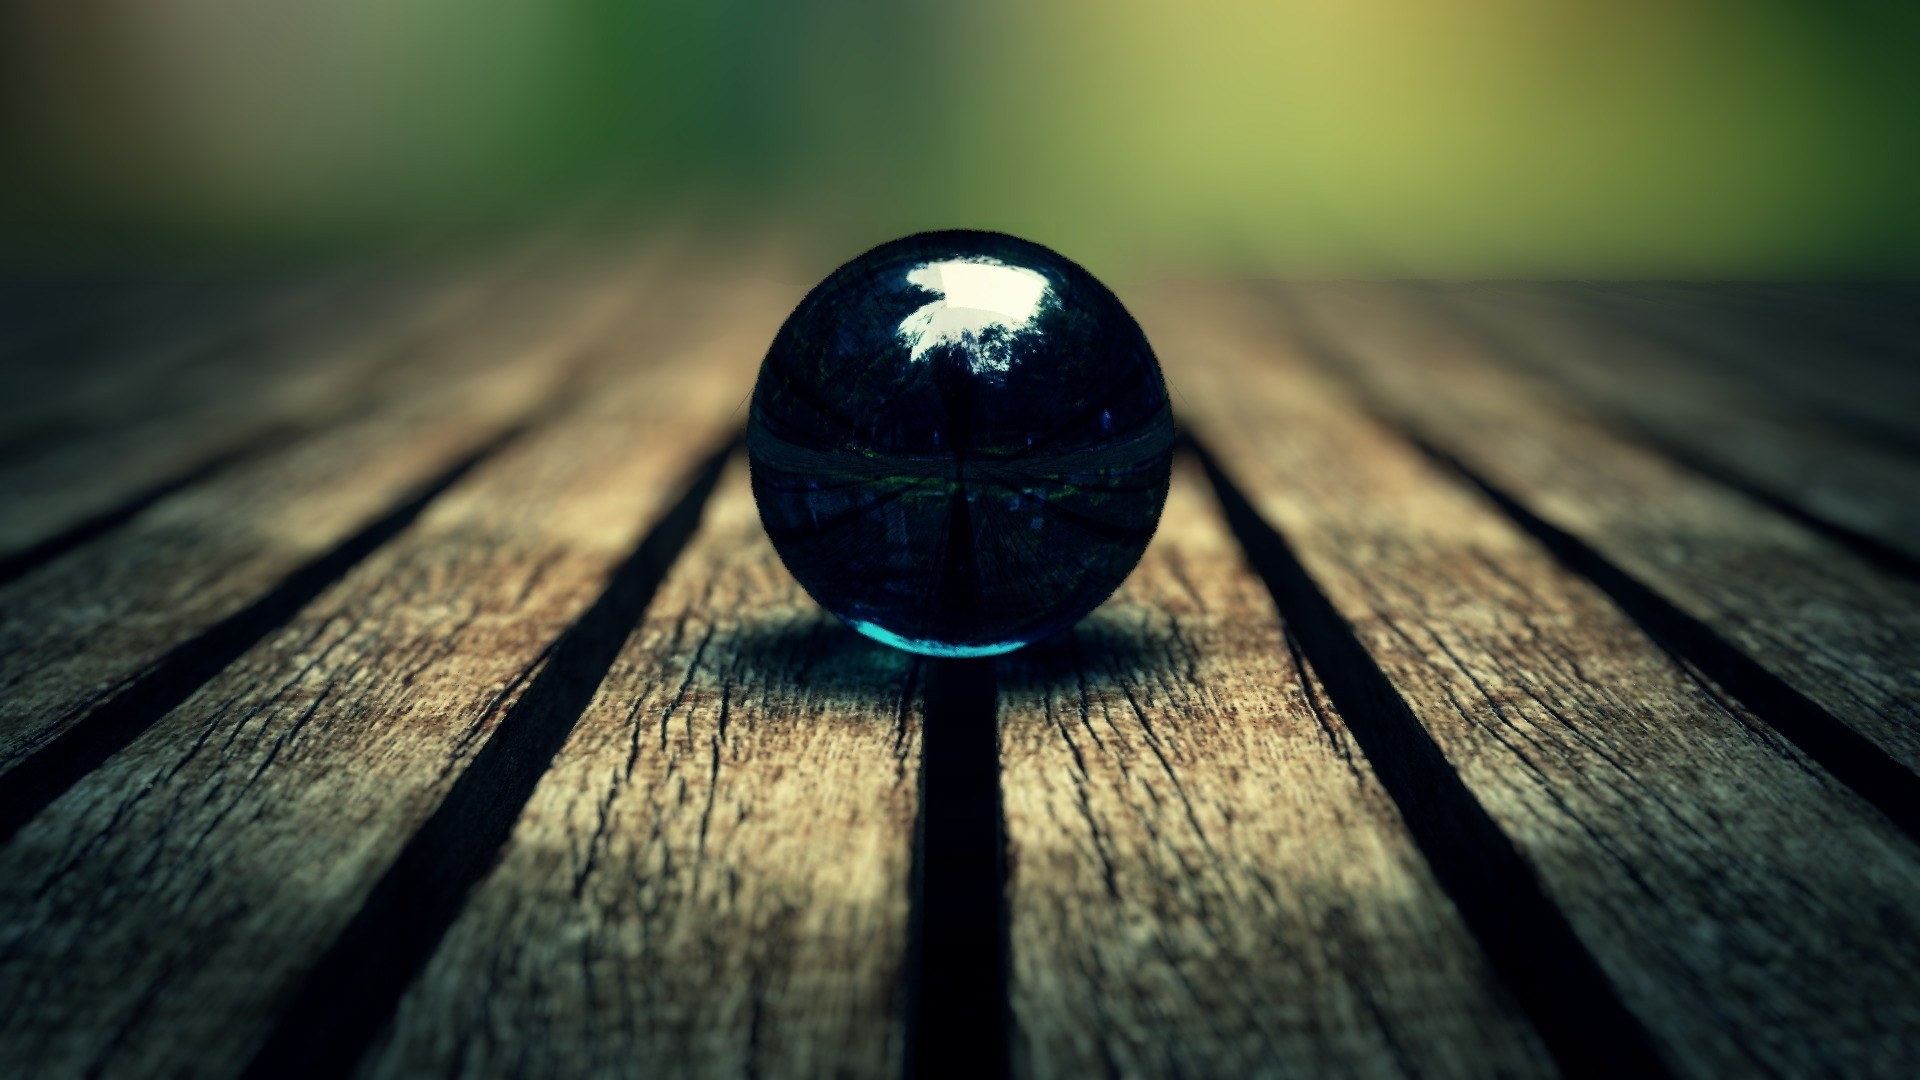 Download Black Ball Abstract Hd Wallpaper Full HD Wallpapers 1920x1080